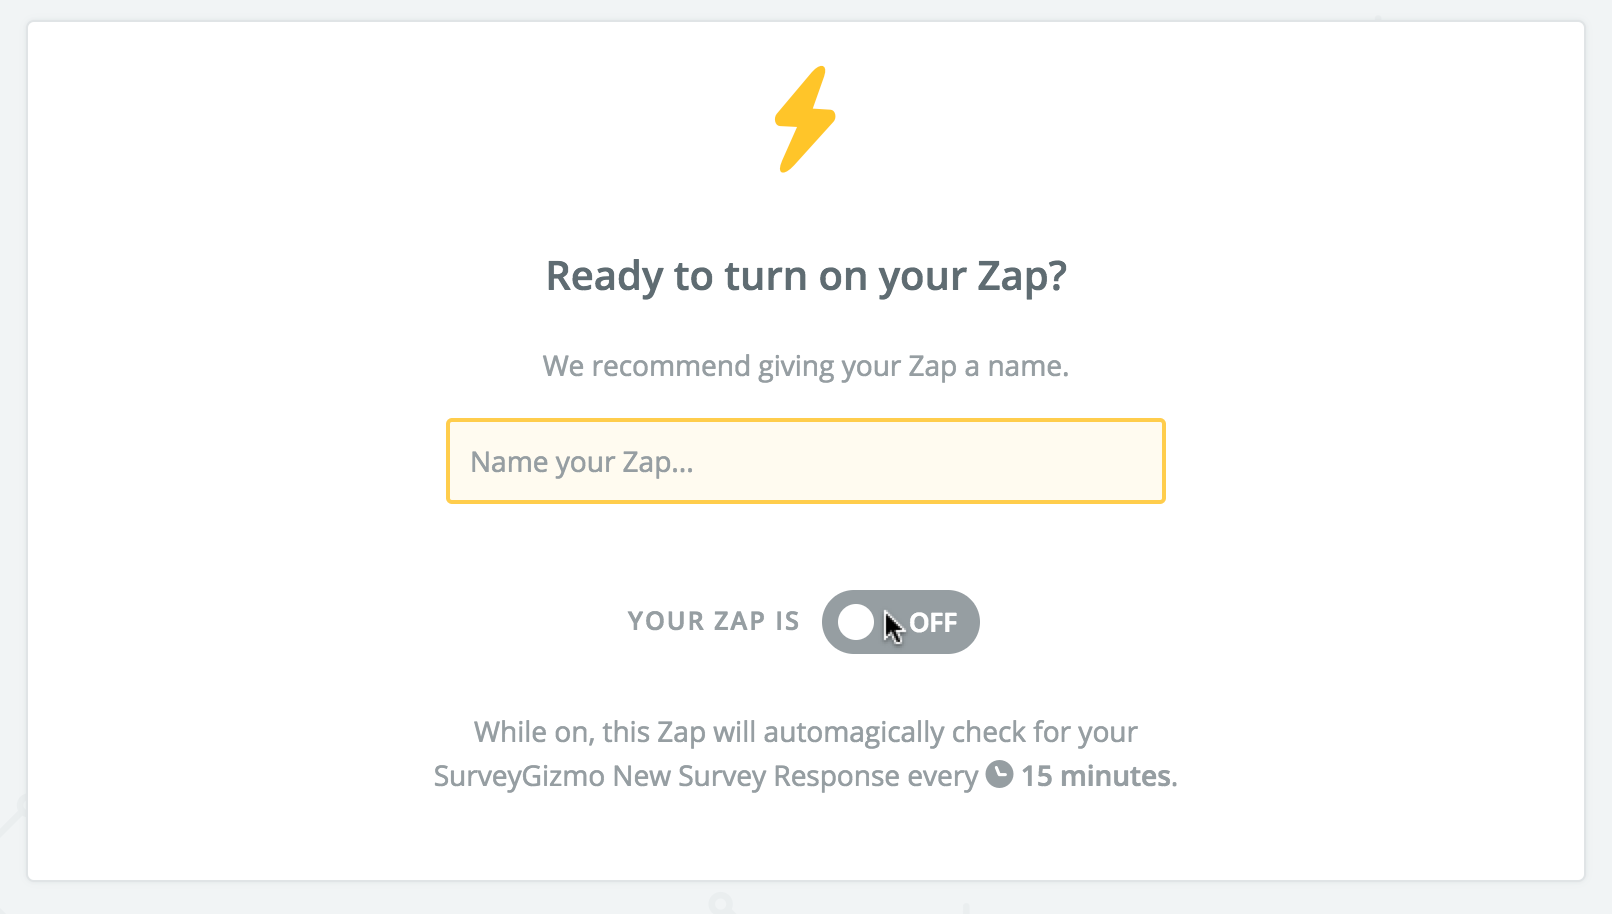 Zapier: Turn on Your Zap